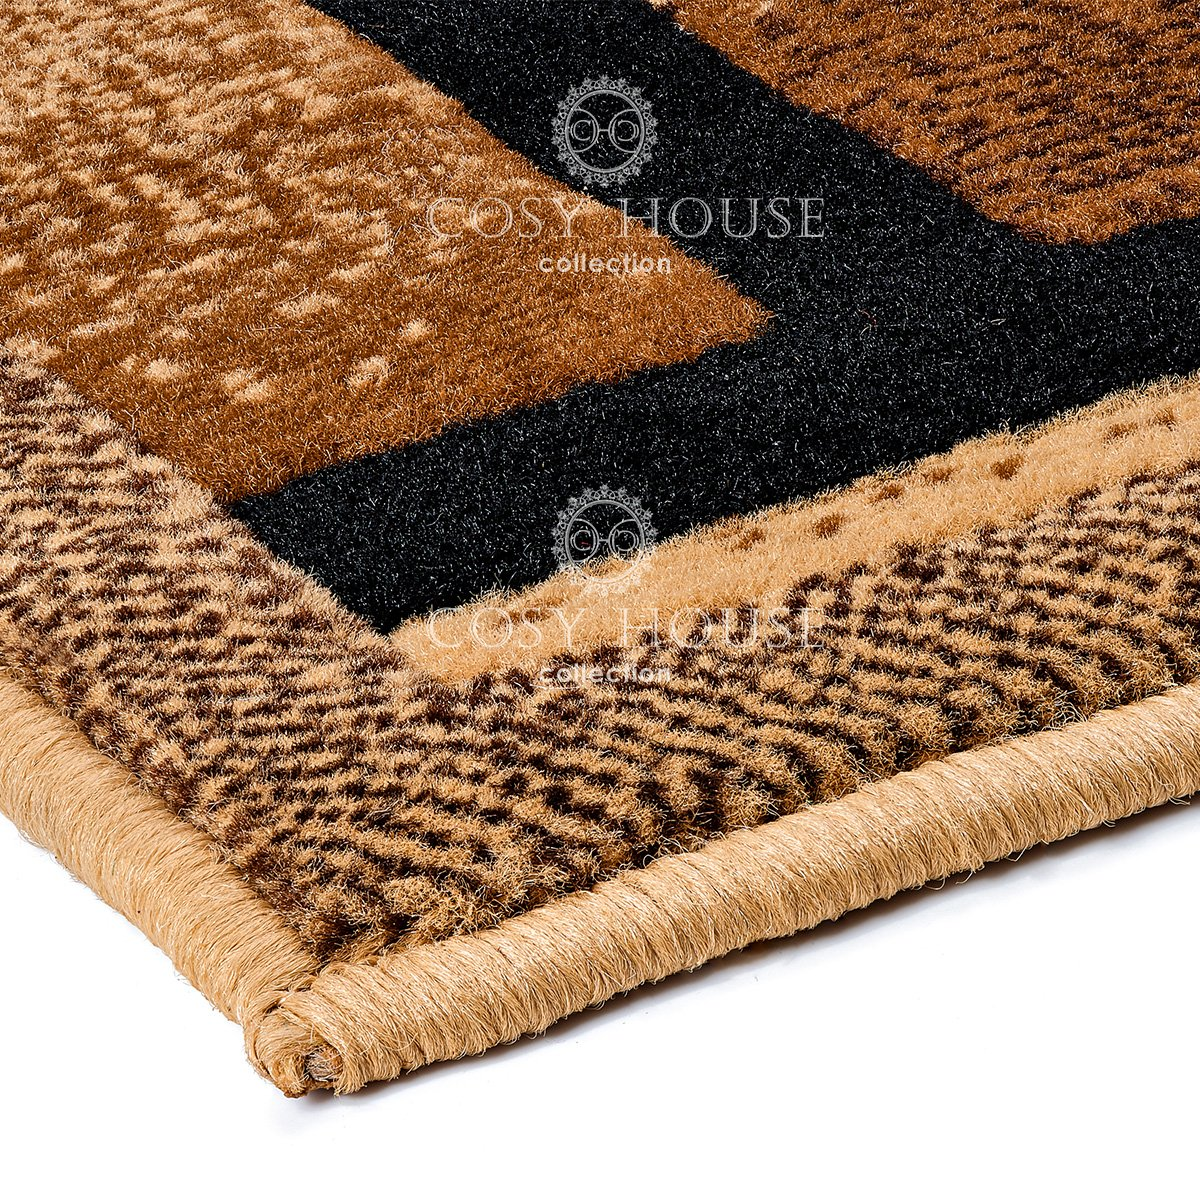 Best Oriental and Traditional Rug for Kitchen Easy Care Durable Resistant Material Imported from Turkey Quality Mats by Cosy House Door Entrance /& Hallways Red,2 X 34